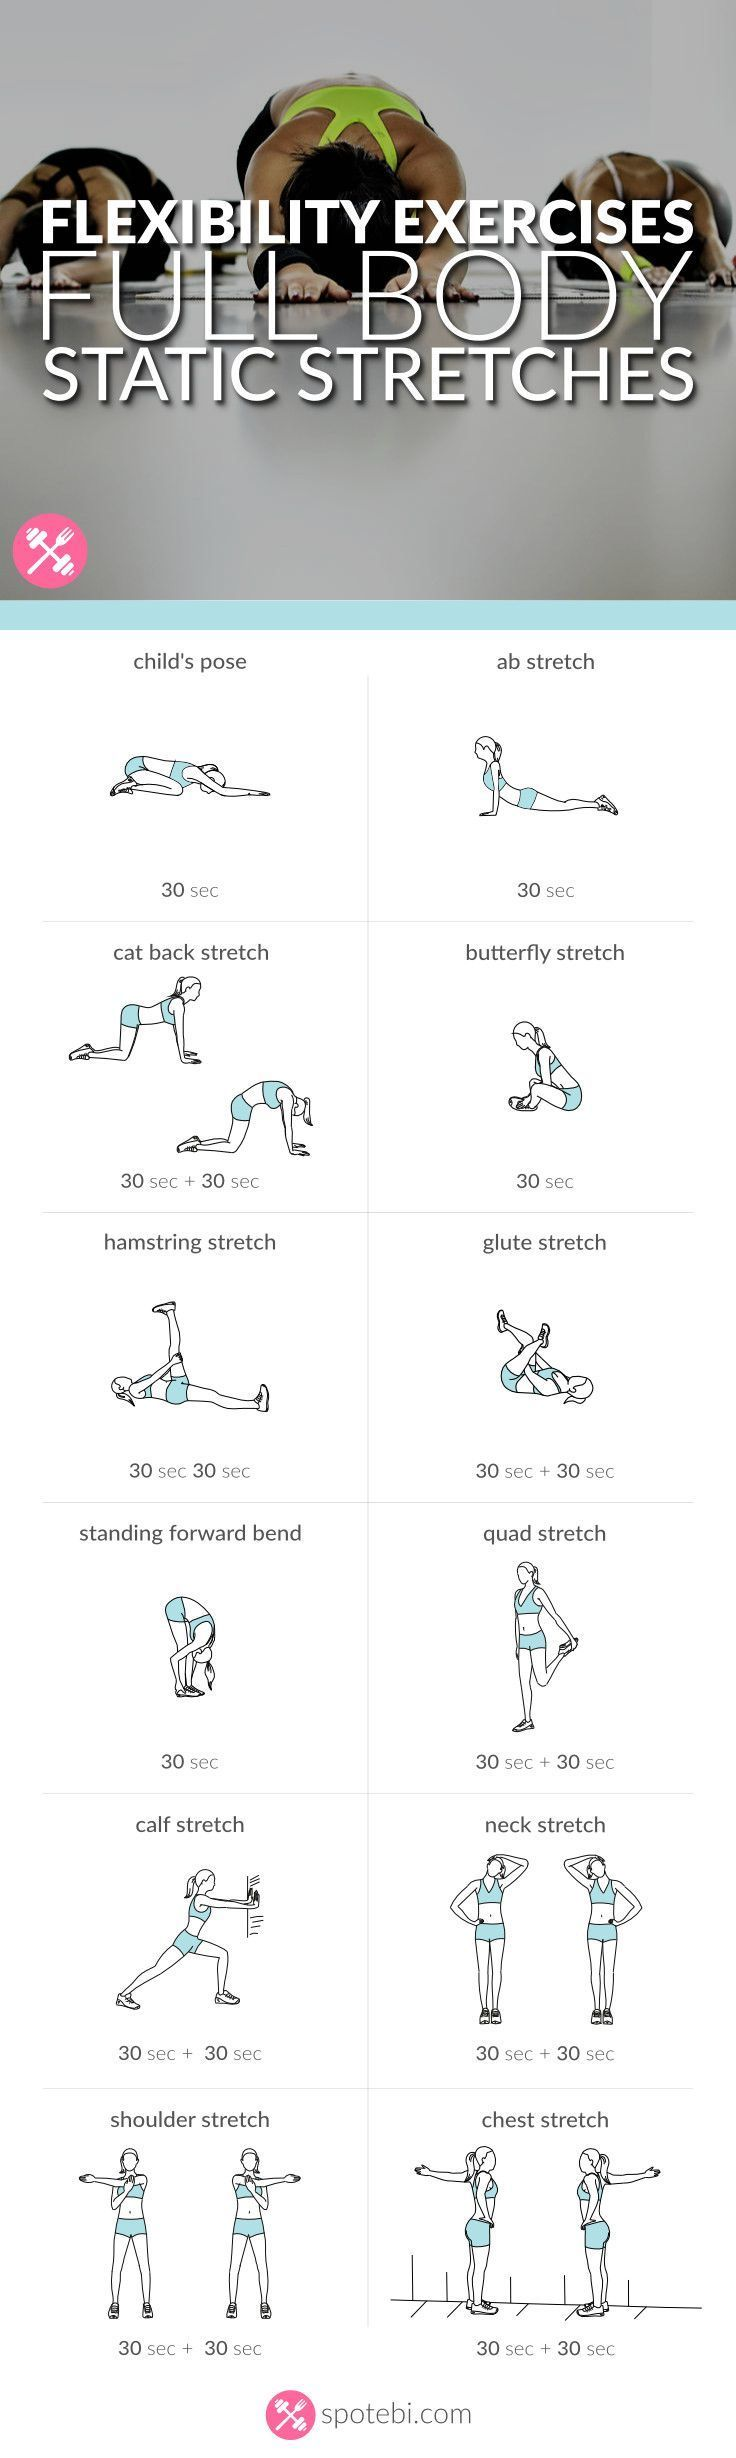 awesome Flexibility Exercises   Full Body Static Stretches